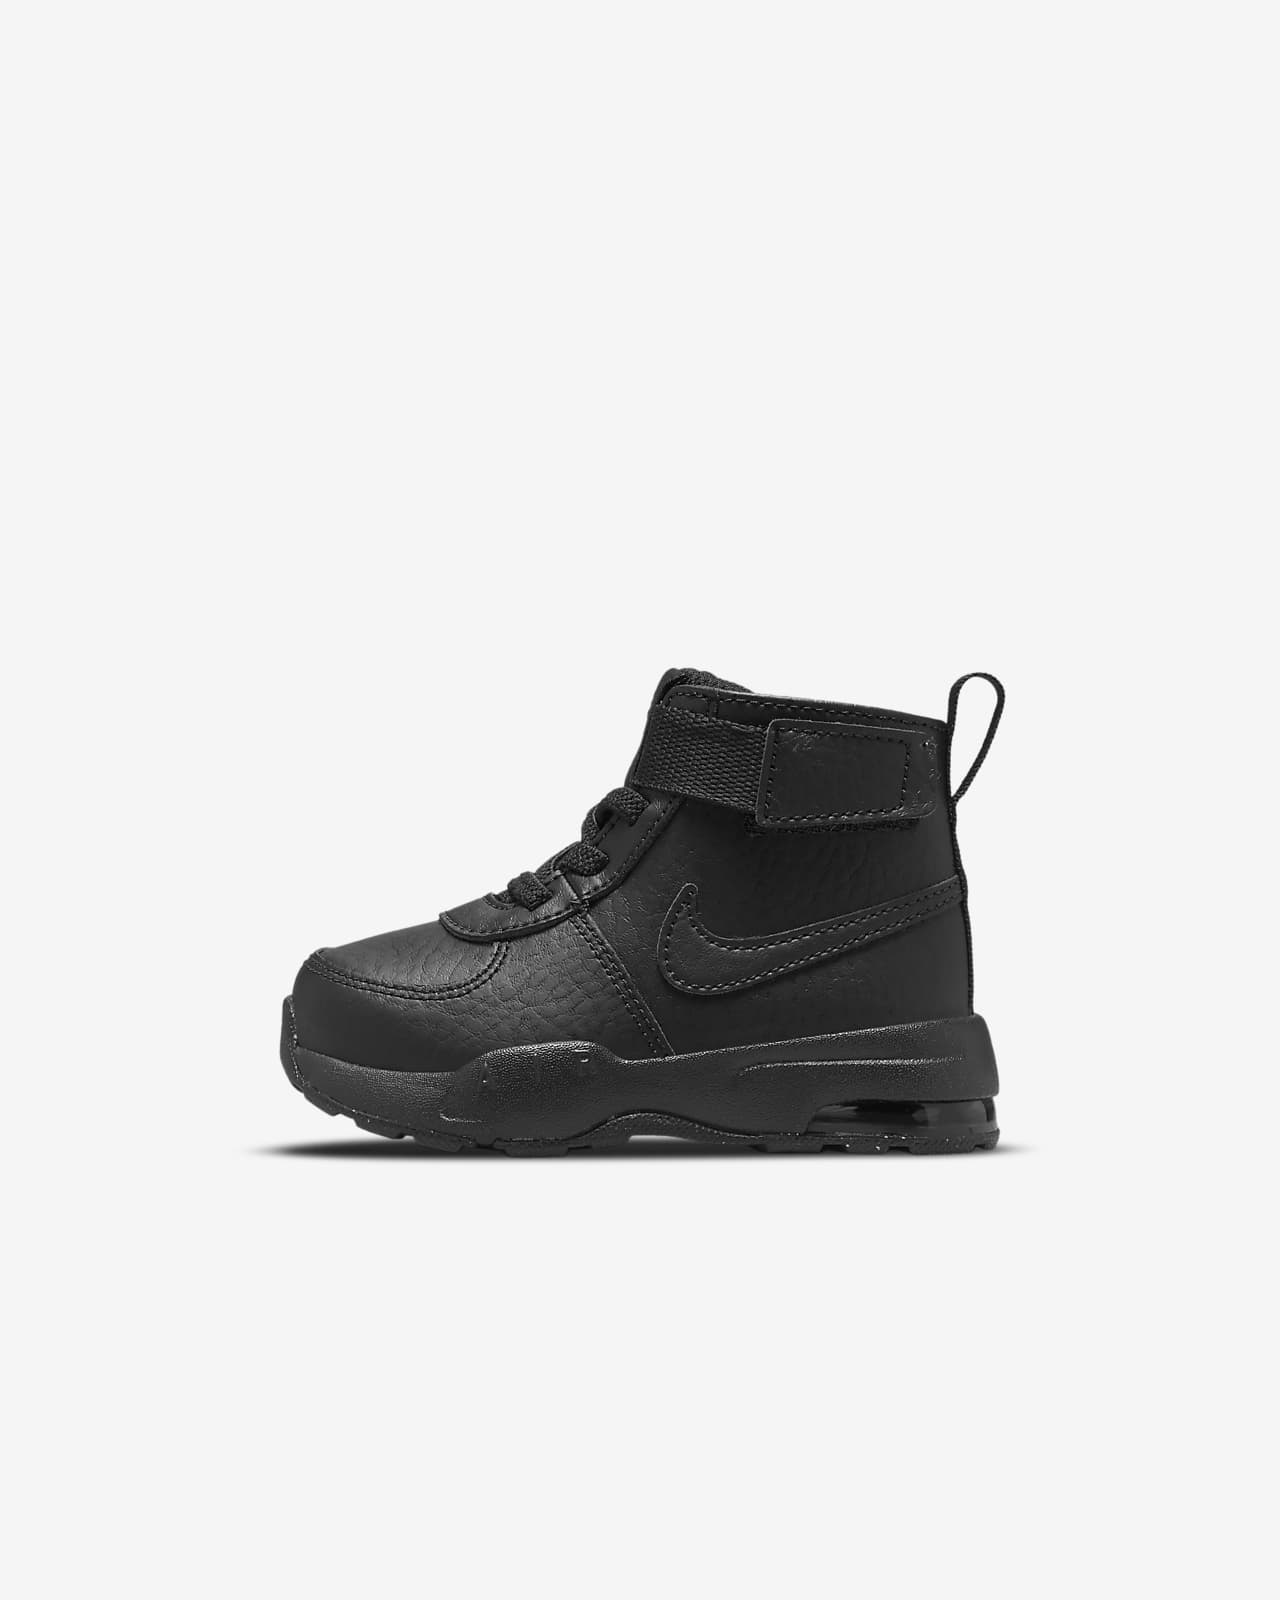 Nike Air Max Goaterra 2.0 Baby/Toddler Shoes